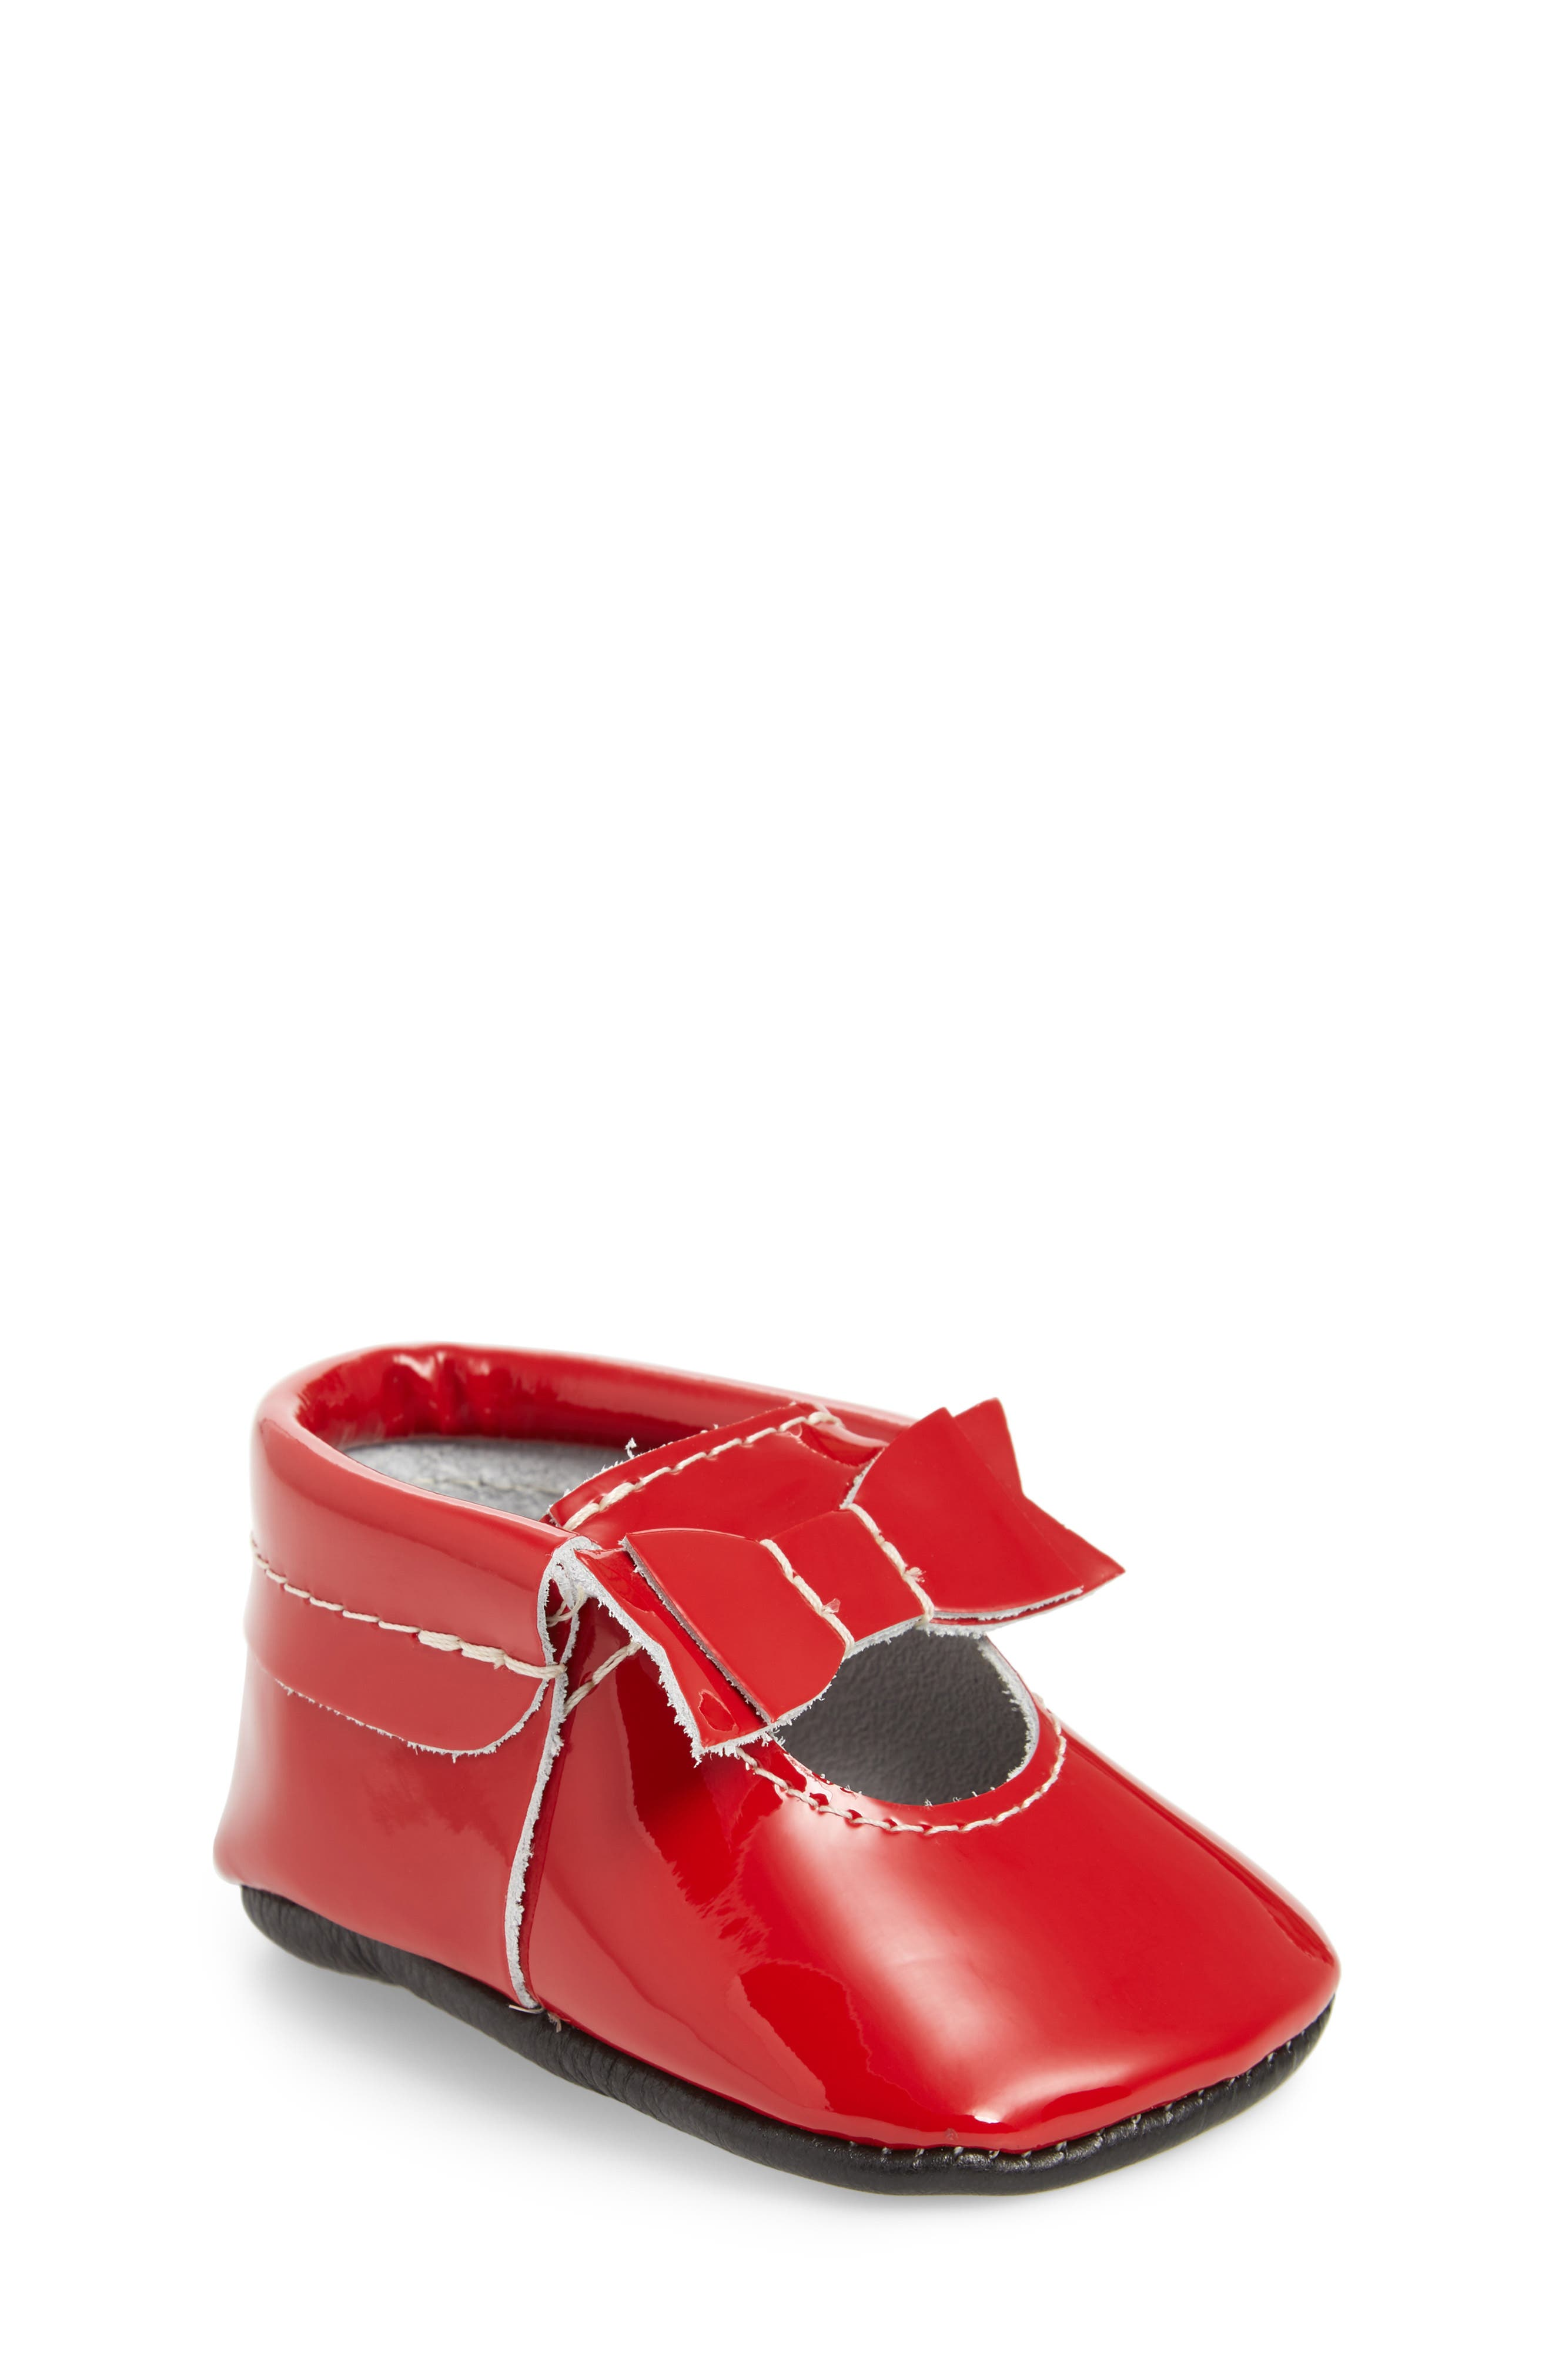 Bow Patent Mary Jane,                             Main thumbnail 1, color,                             RED PATENT